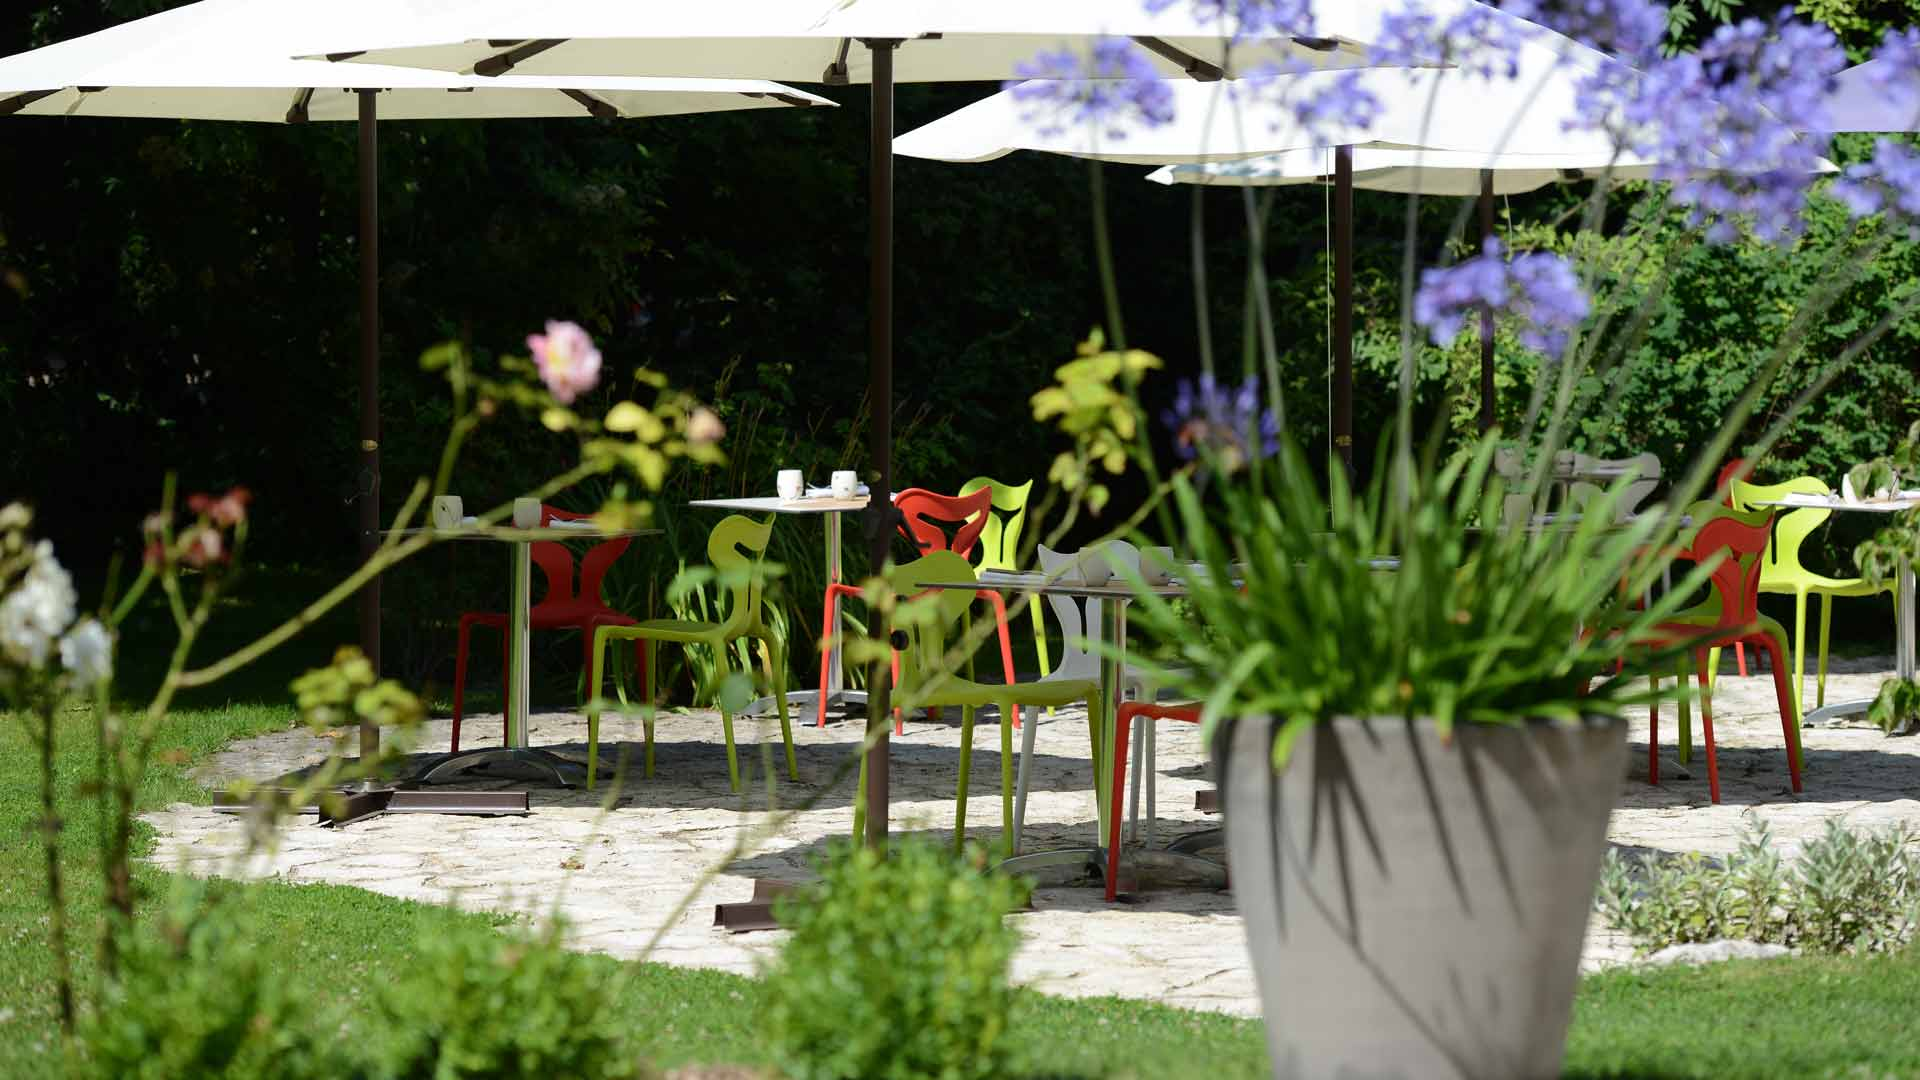 H tel le jardin des plumes stouring in france for Restaurant reims le jardin